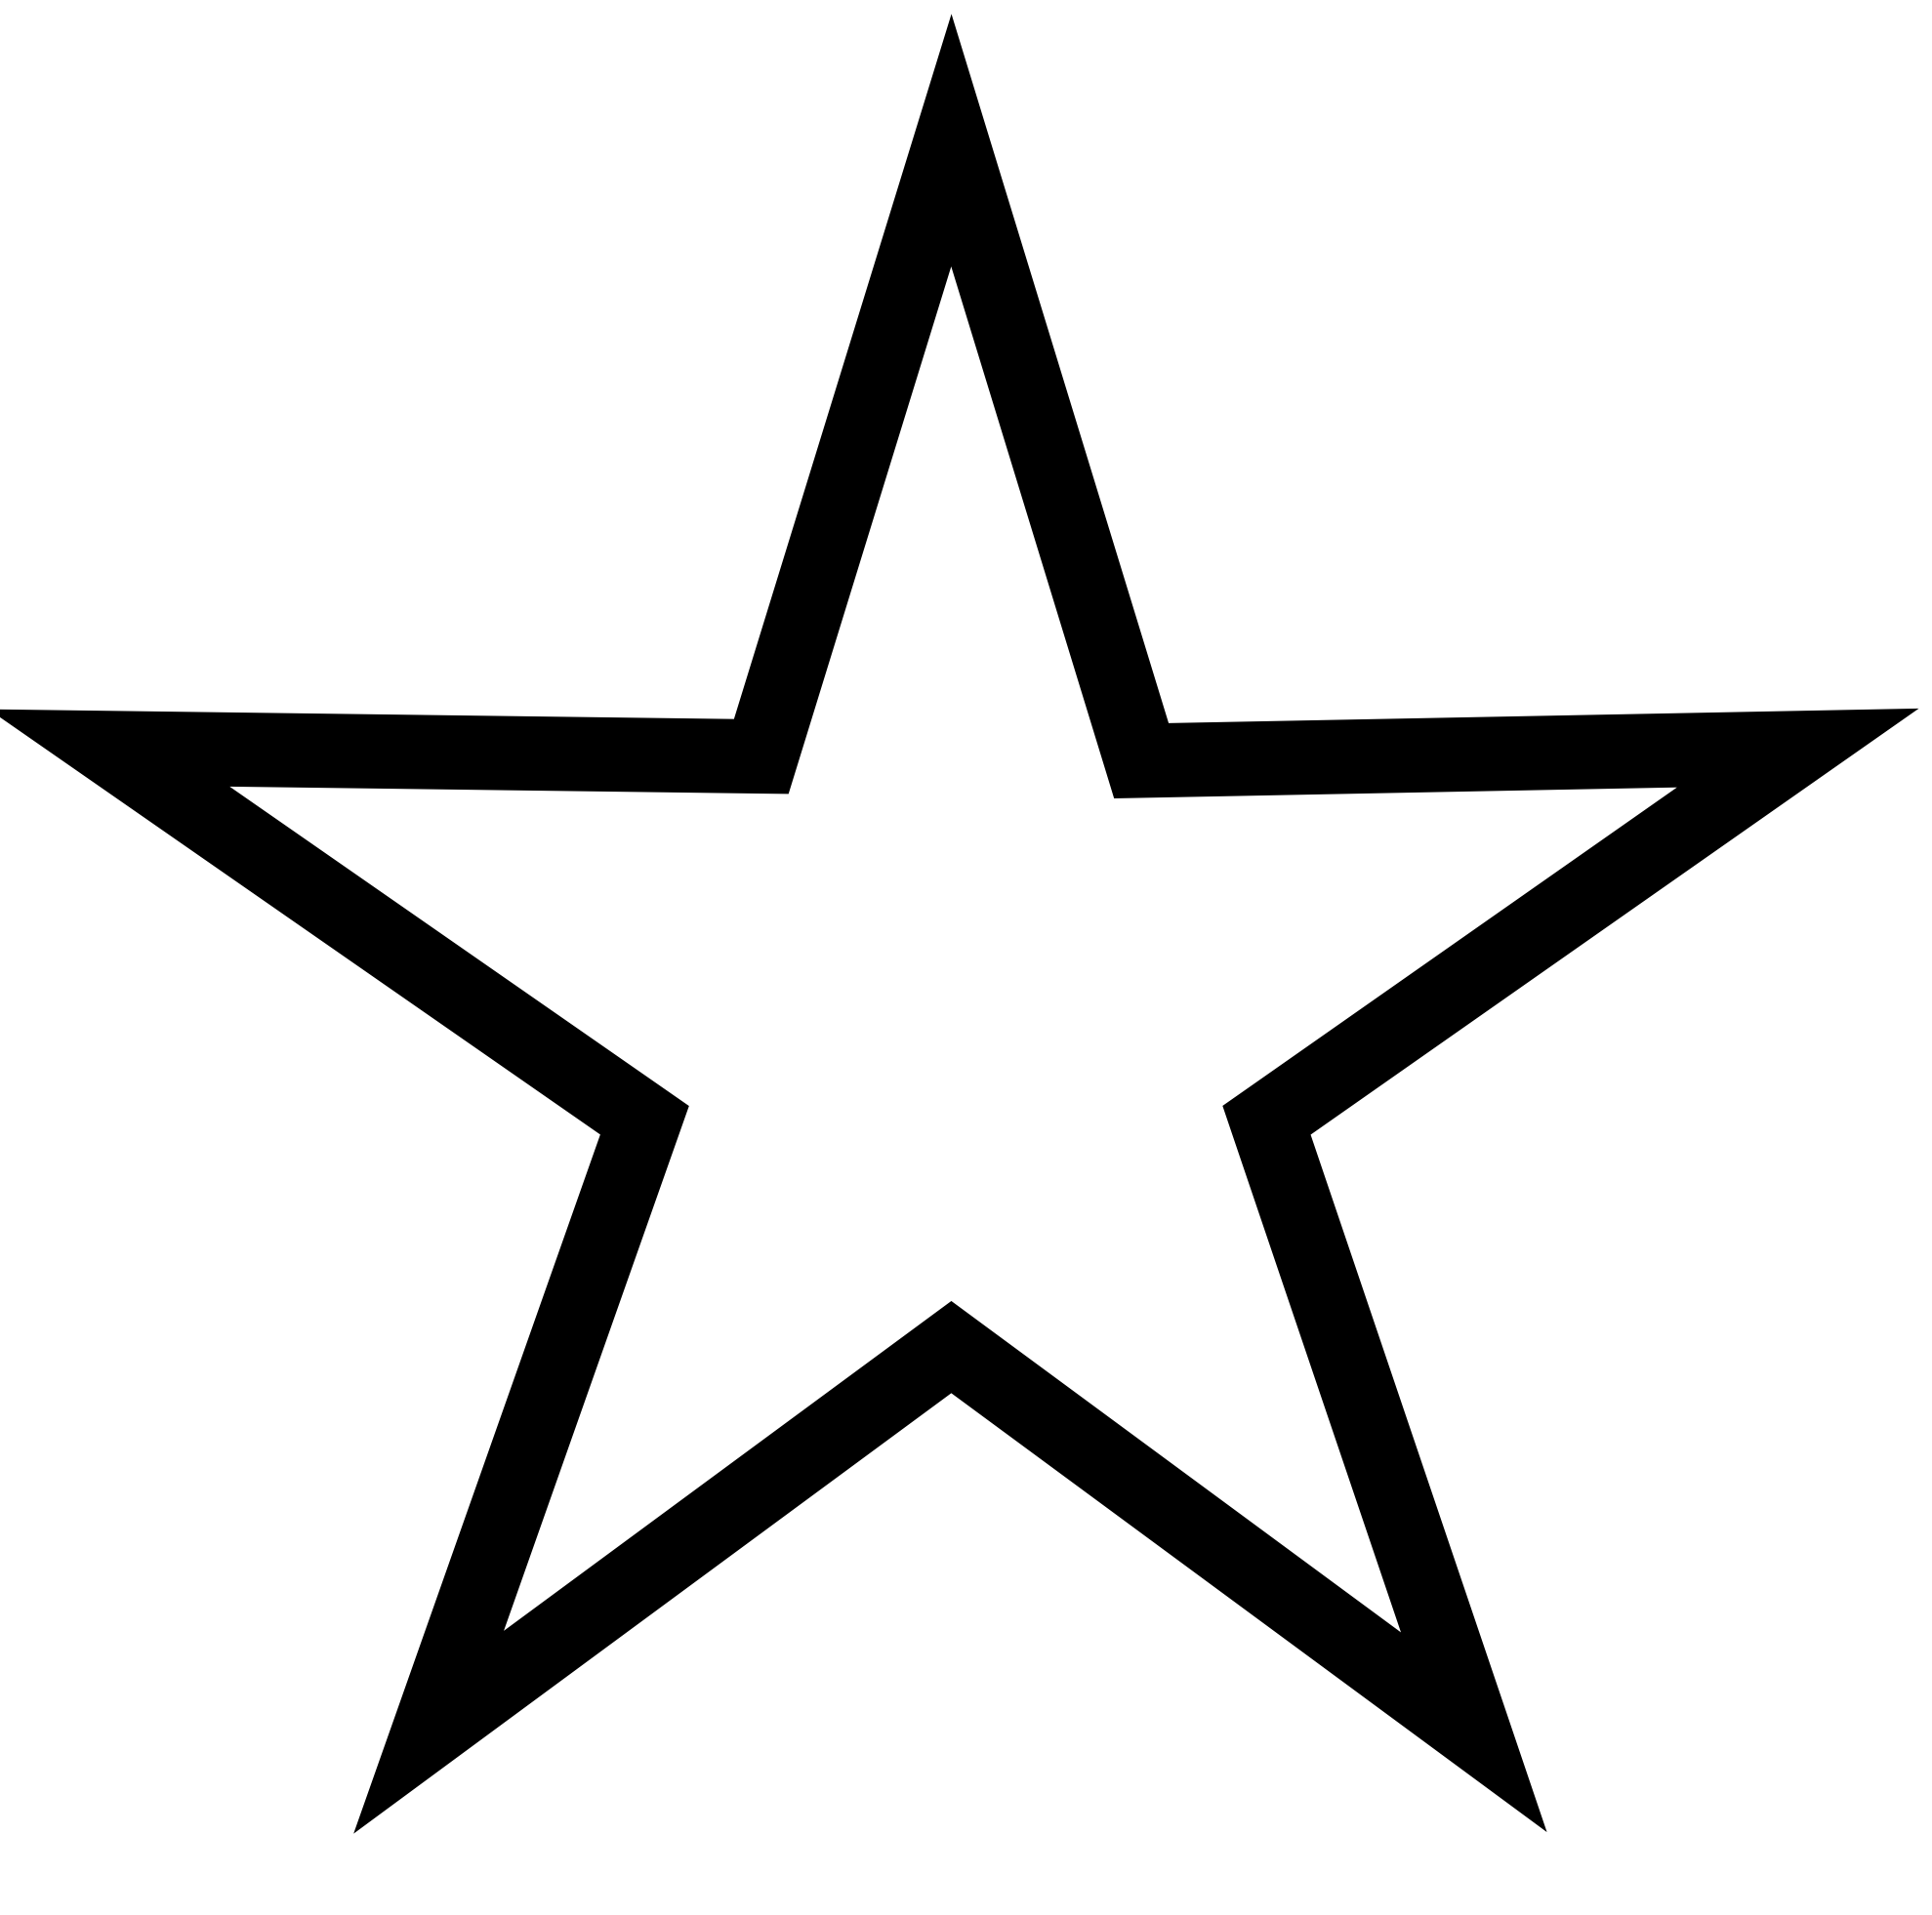 Star download clip art. Free clipart stars row of 10 black & white